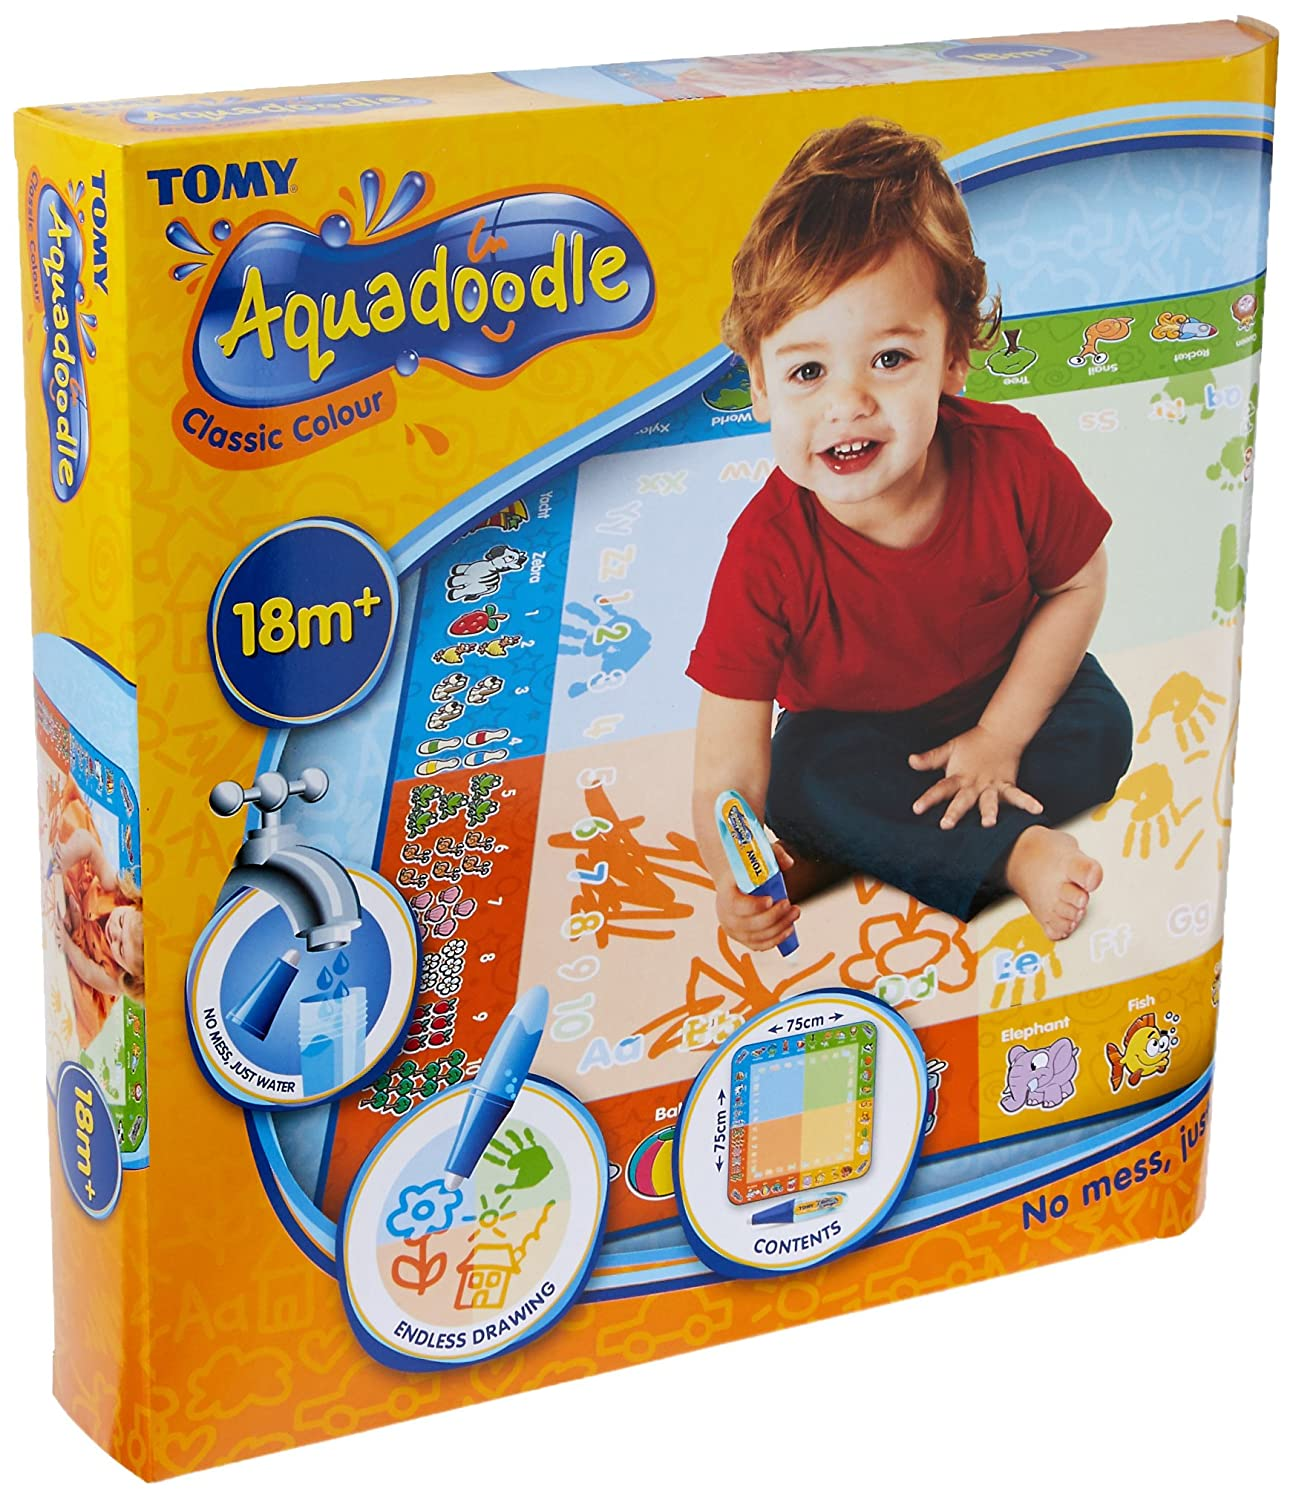 Aquadoodle Classic Colour – Mess Free Drawing Fun for Children ages 18 months+